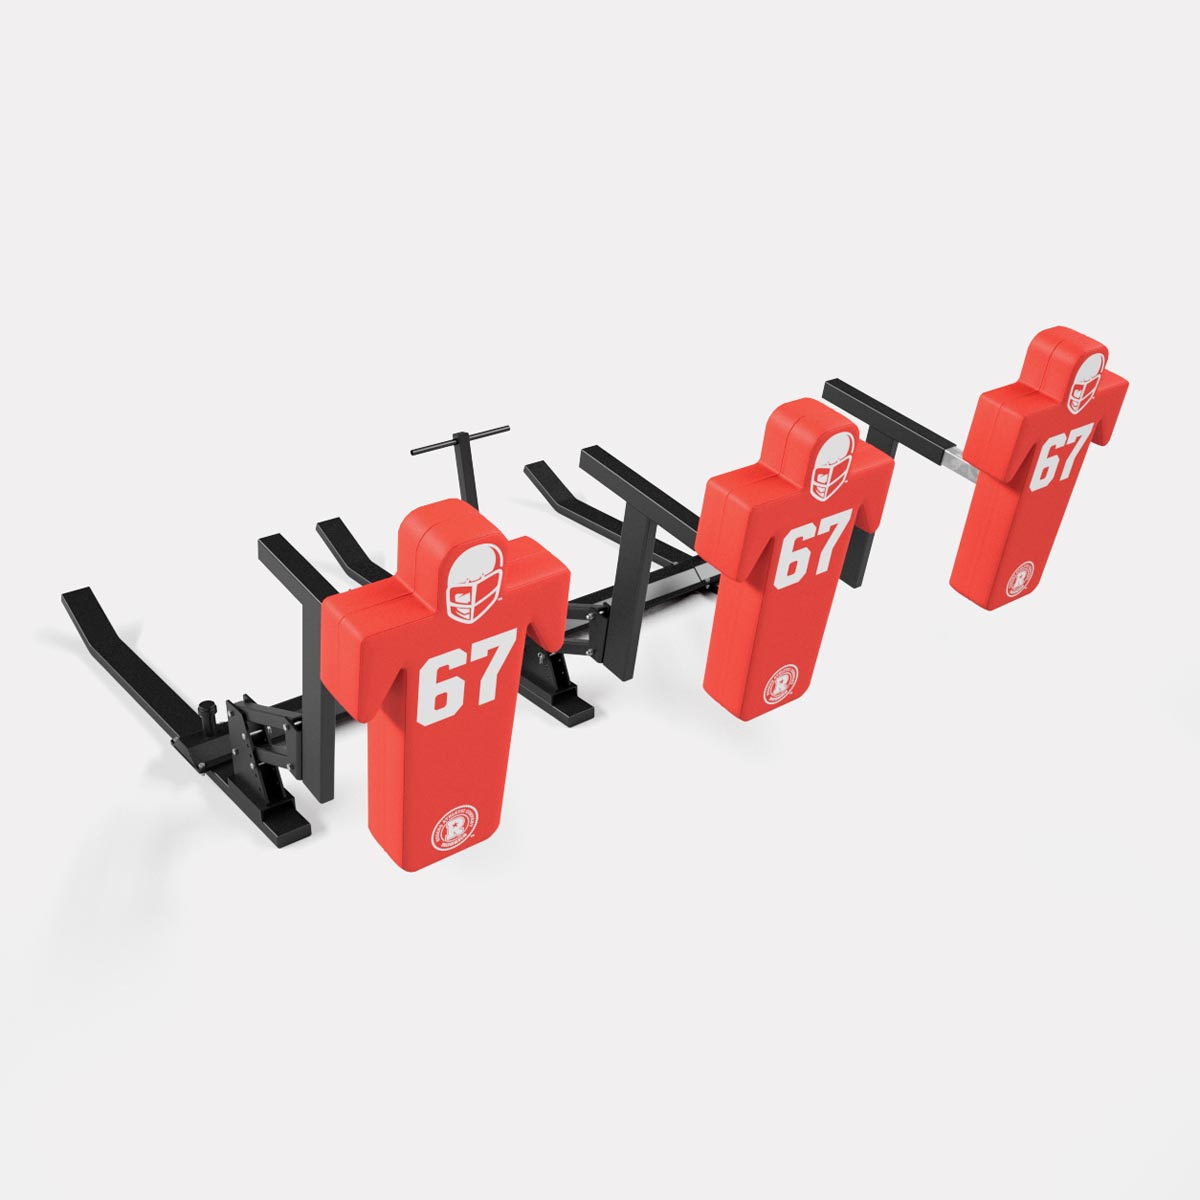 3 man football sled - double action pro